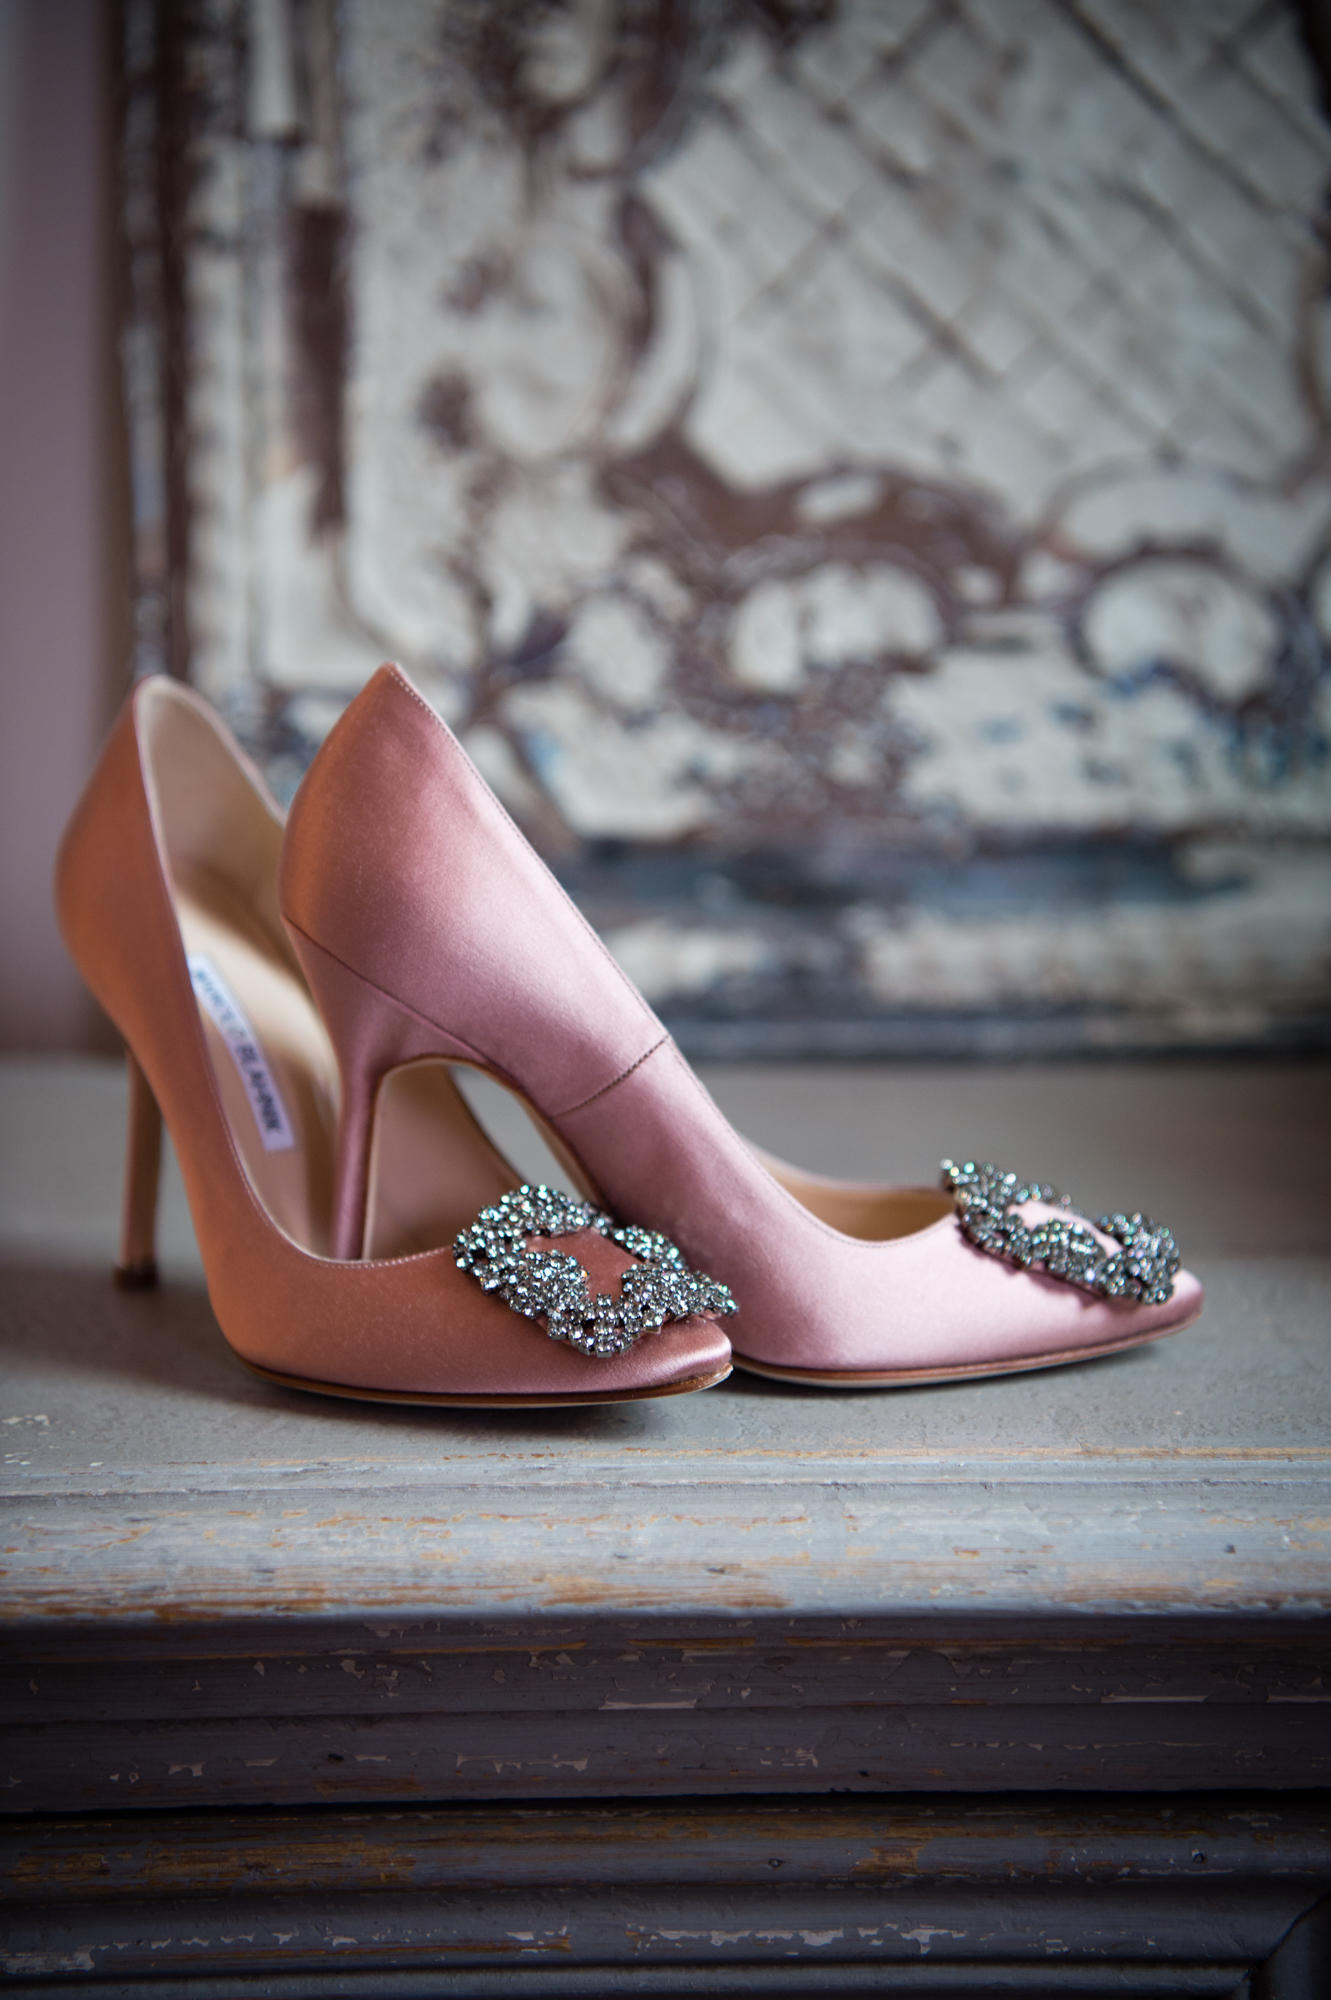 A pair of Manolo Blahnik bridal shoes